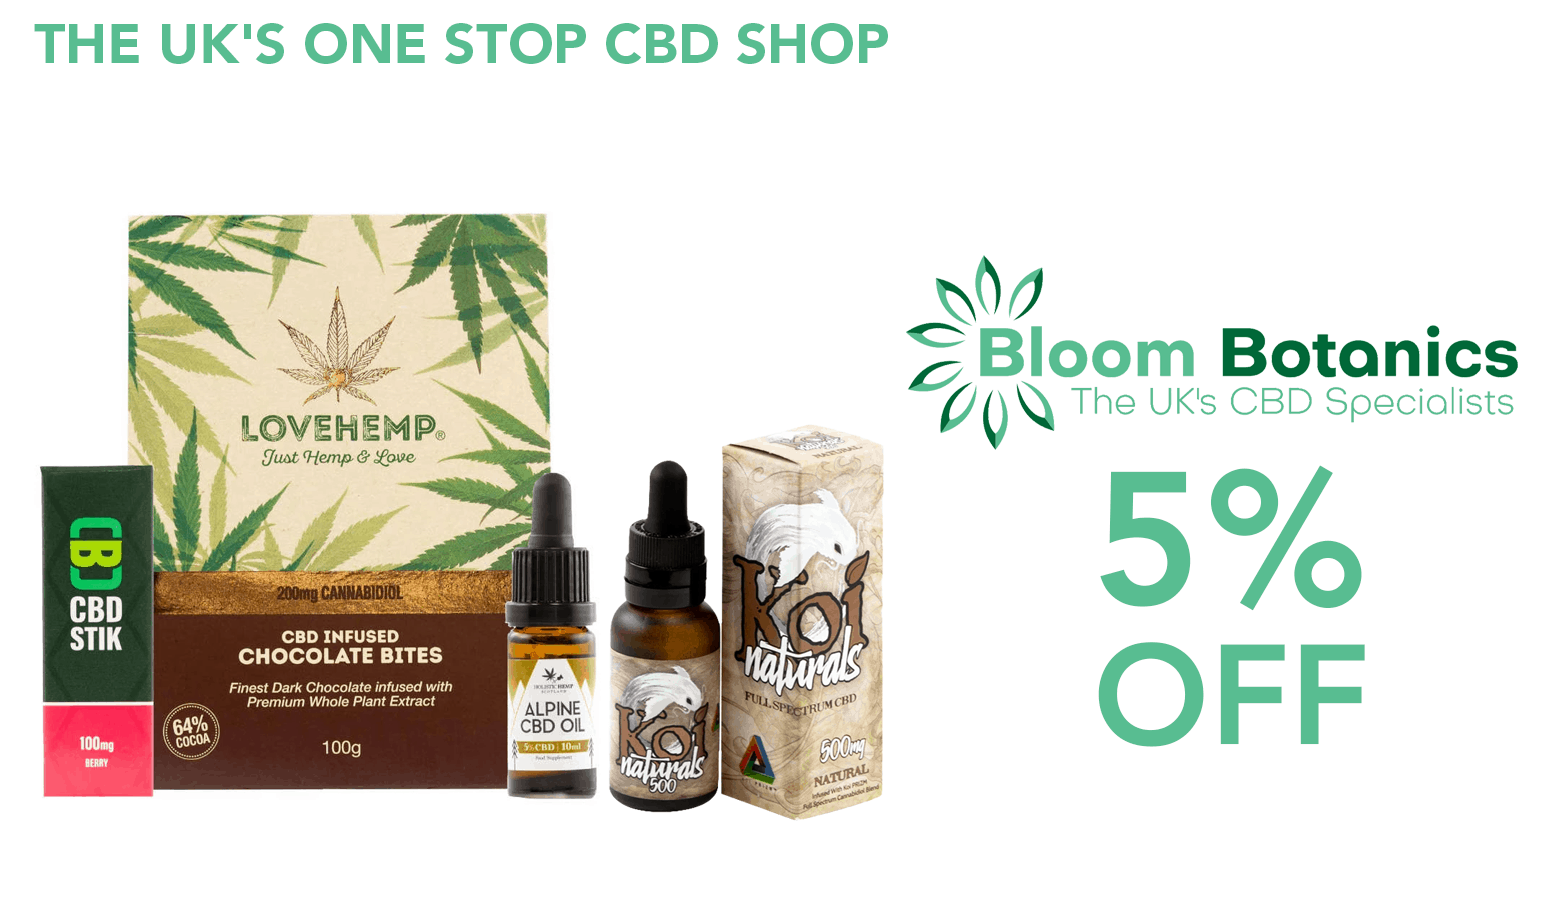 Bloom Botanics CBD Coupon Code discounts promos save on cannabis online Website